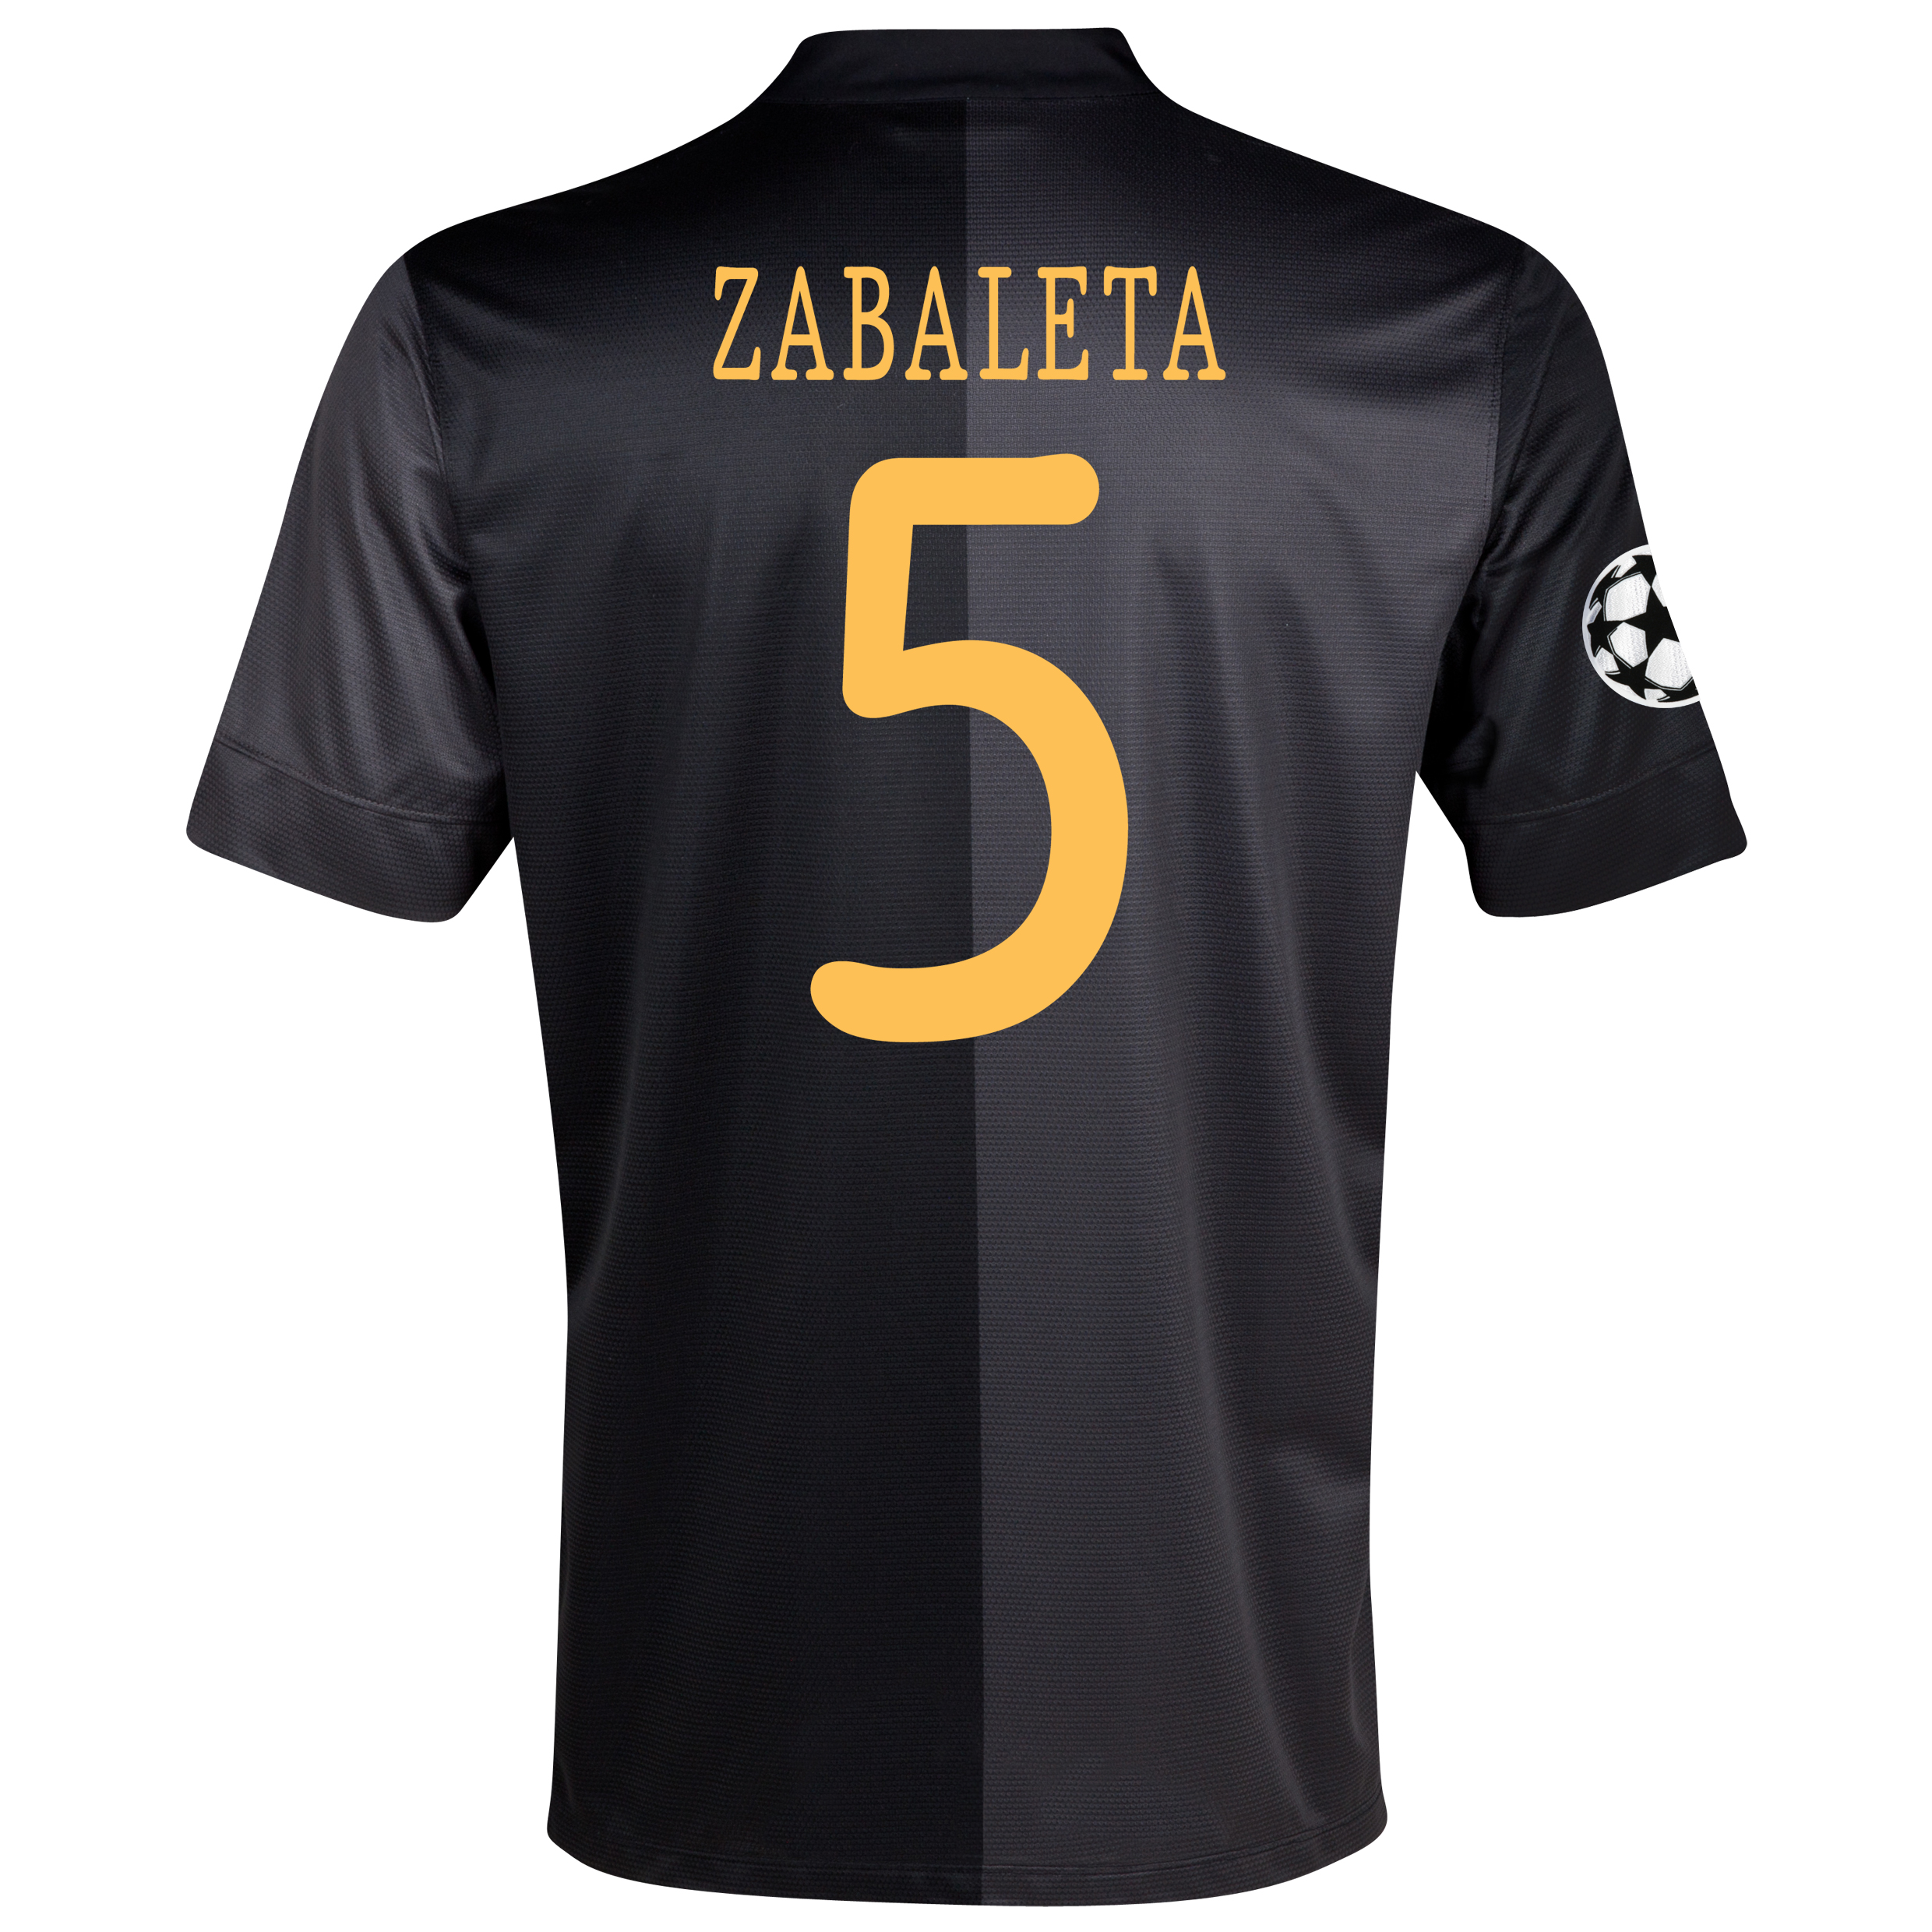 Manchester City UEFA Champions League Away Shirt 2013/14 with Zabaleta 5 printing